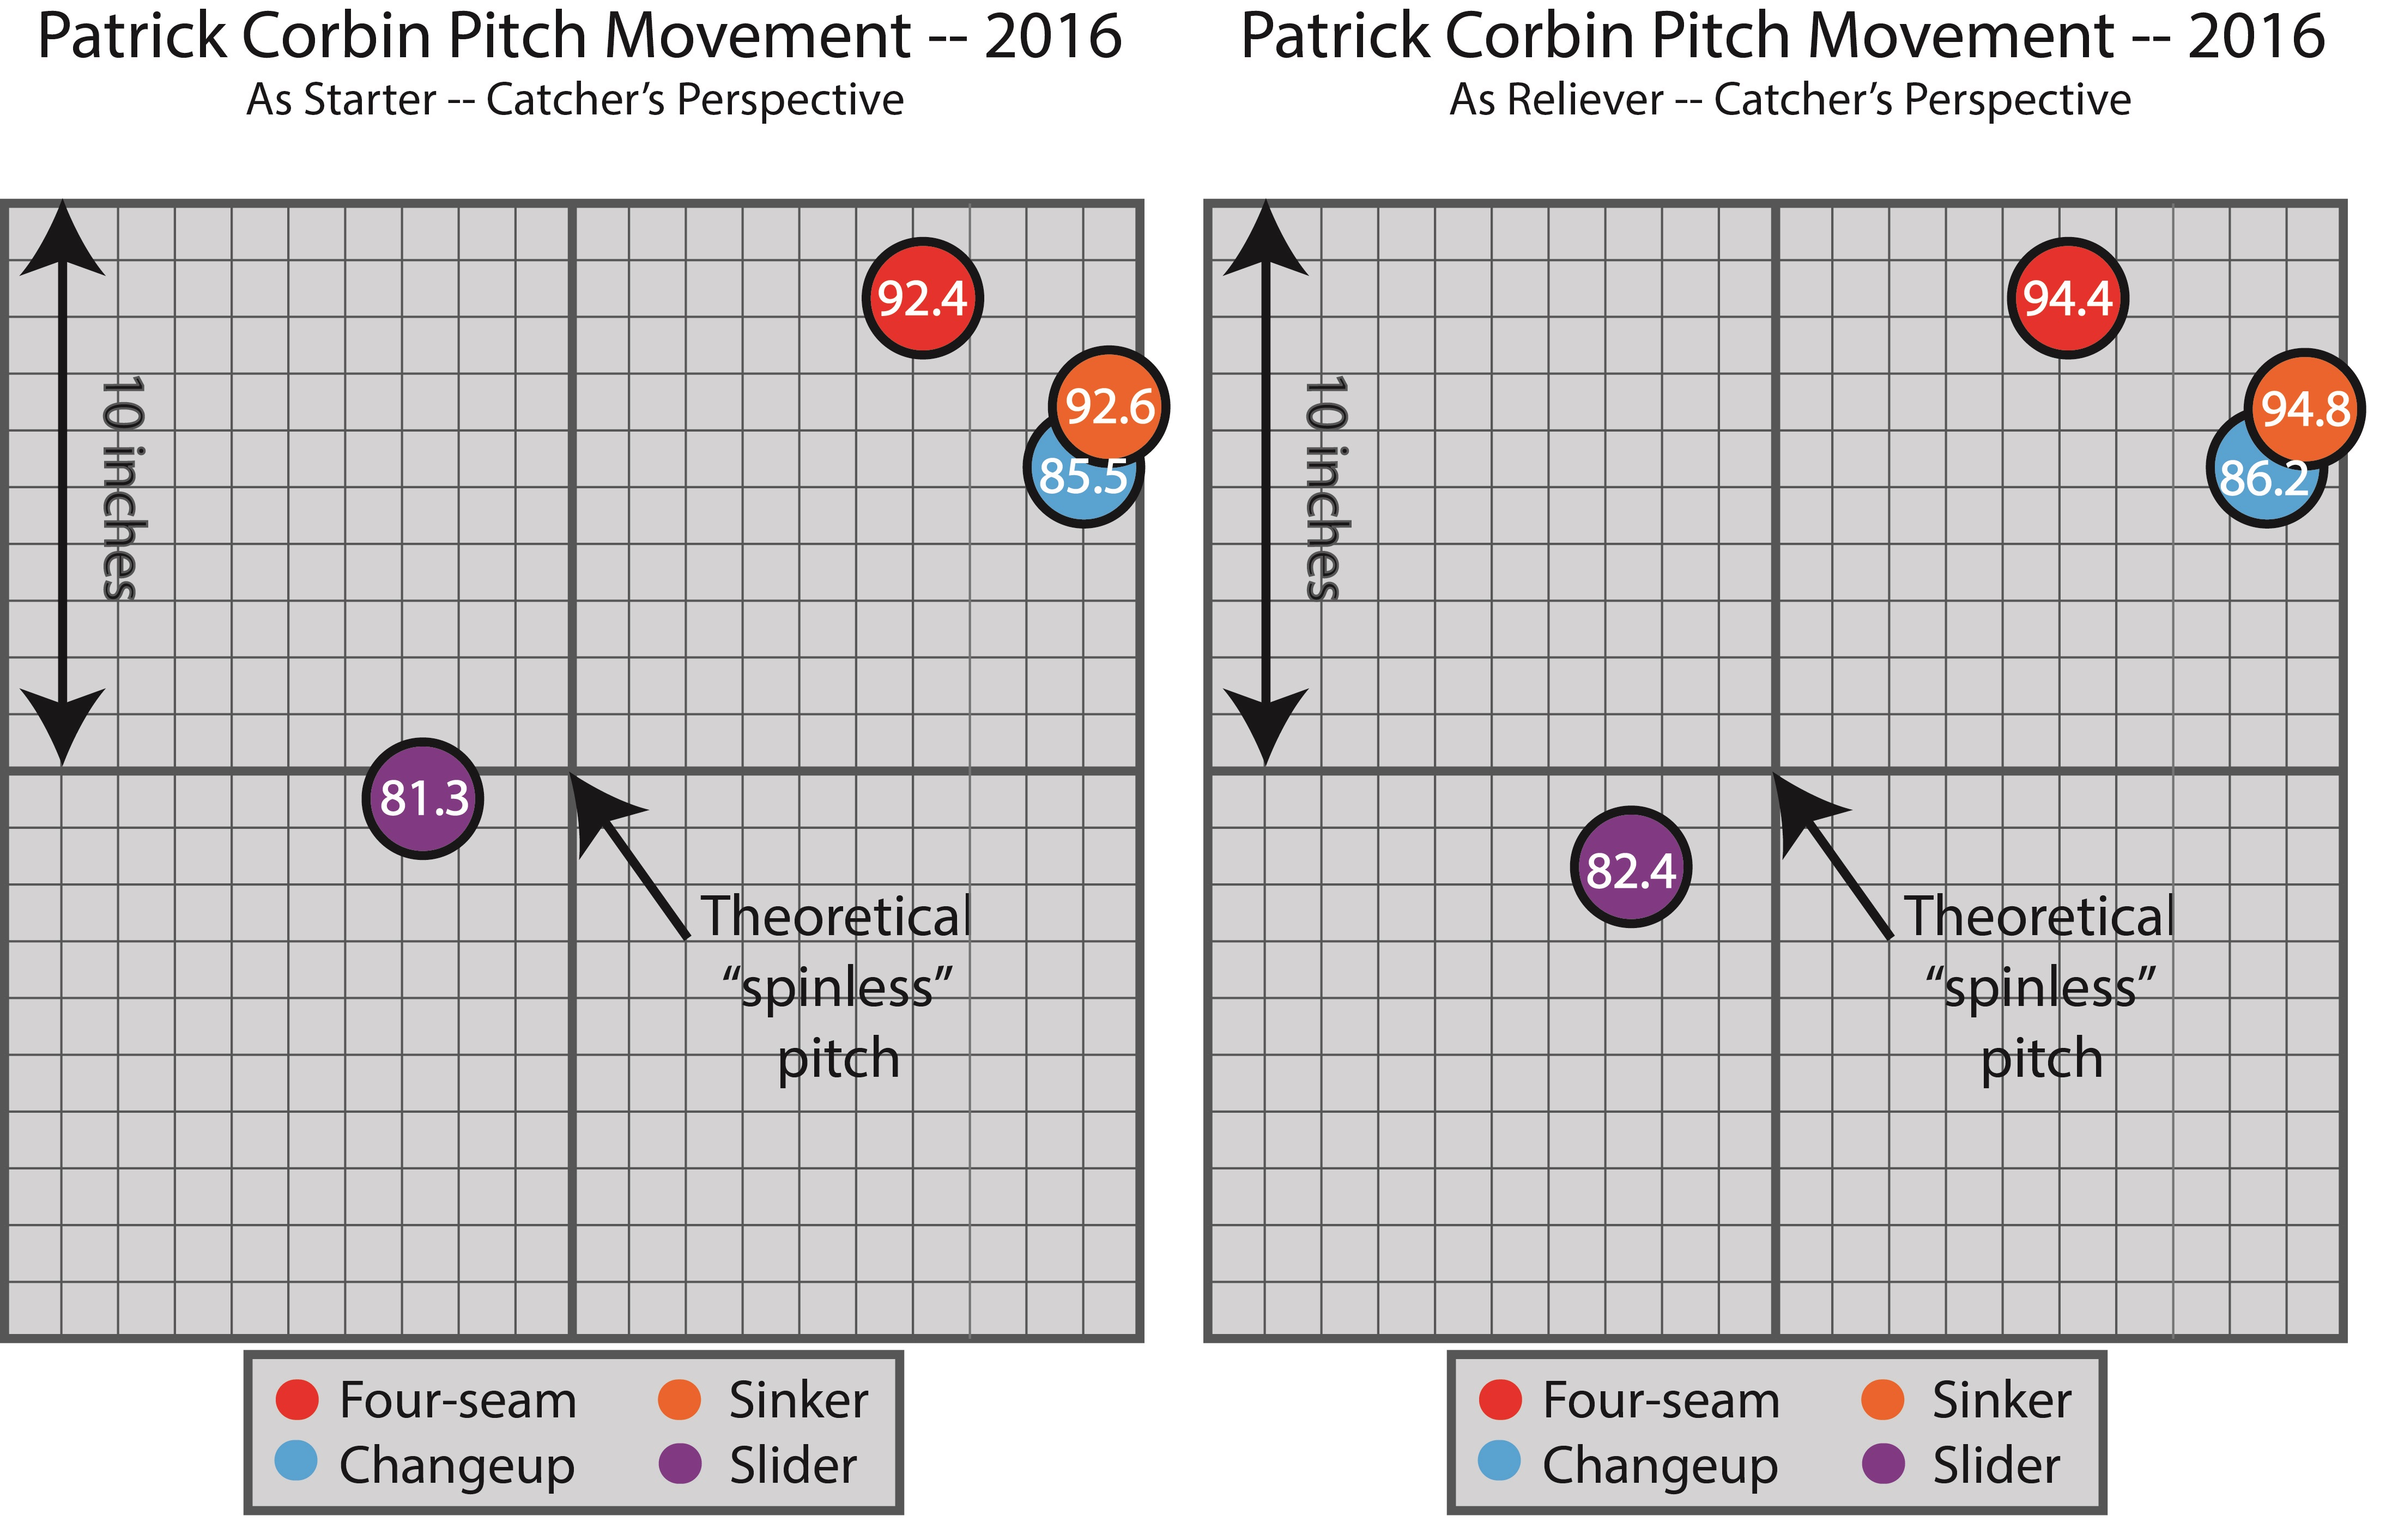 pitch-plot-patrick-corbin-comparison-starter-and-reliever